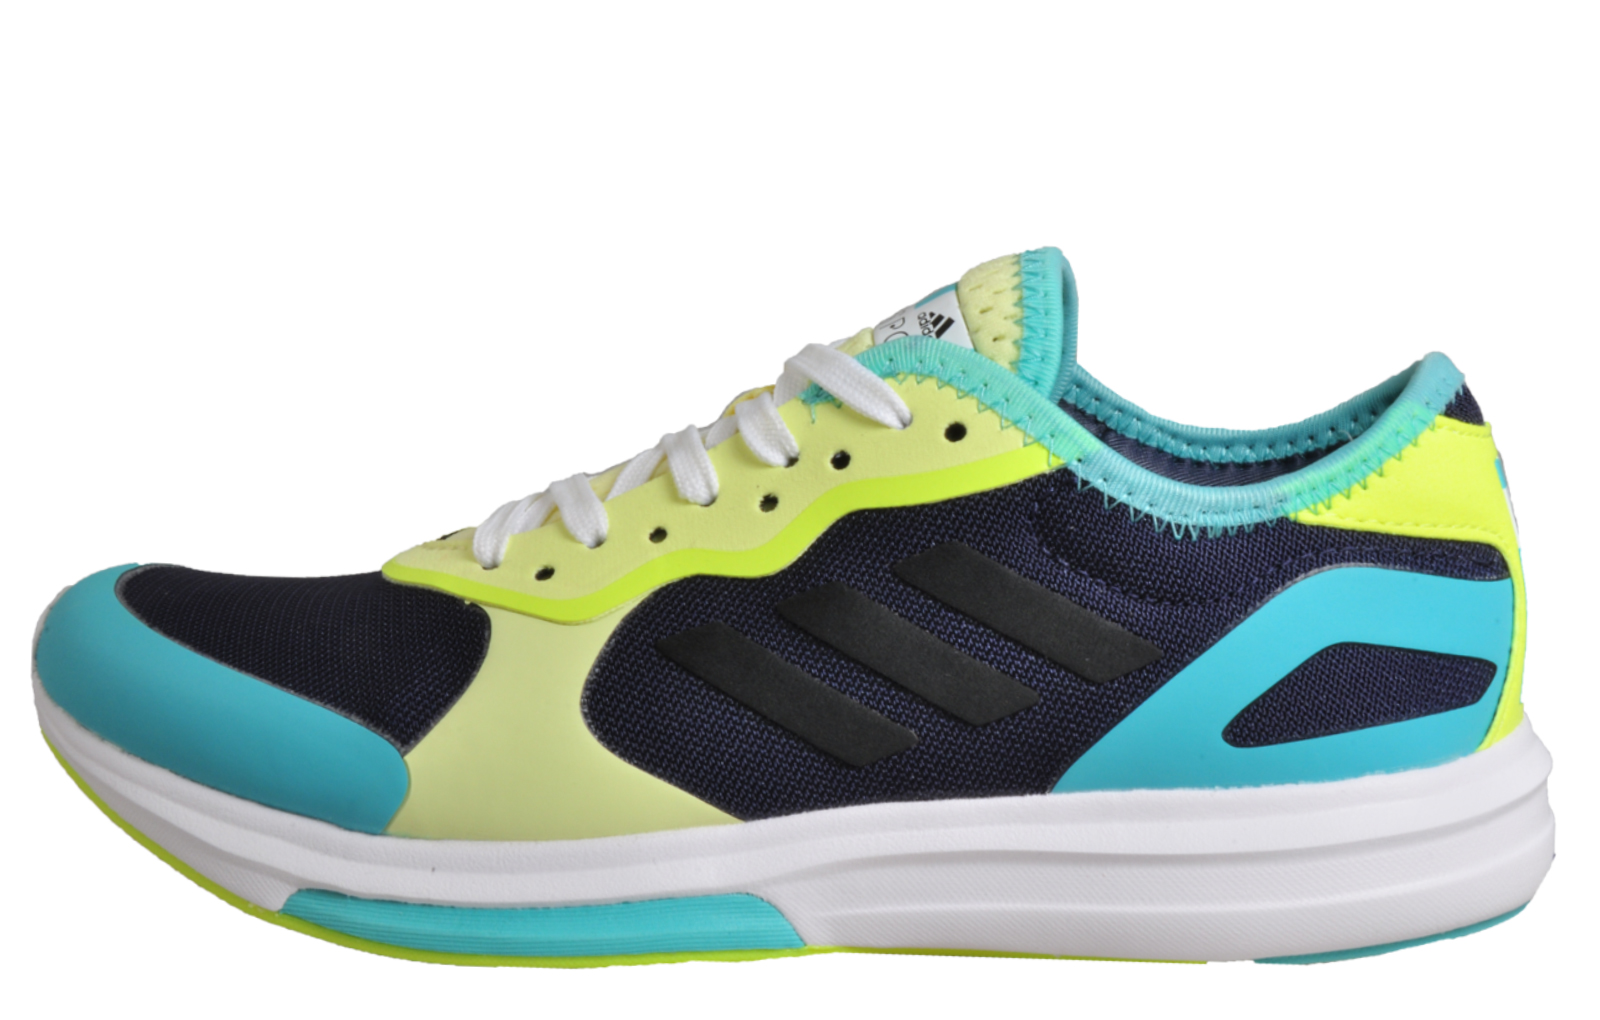 Adidas Originals Stella McCartney Yvori Womens - AD169797